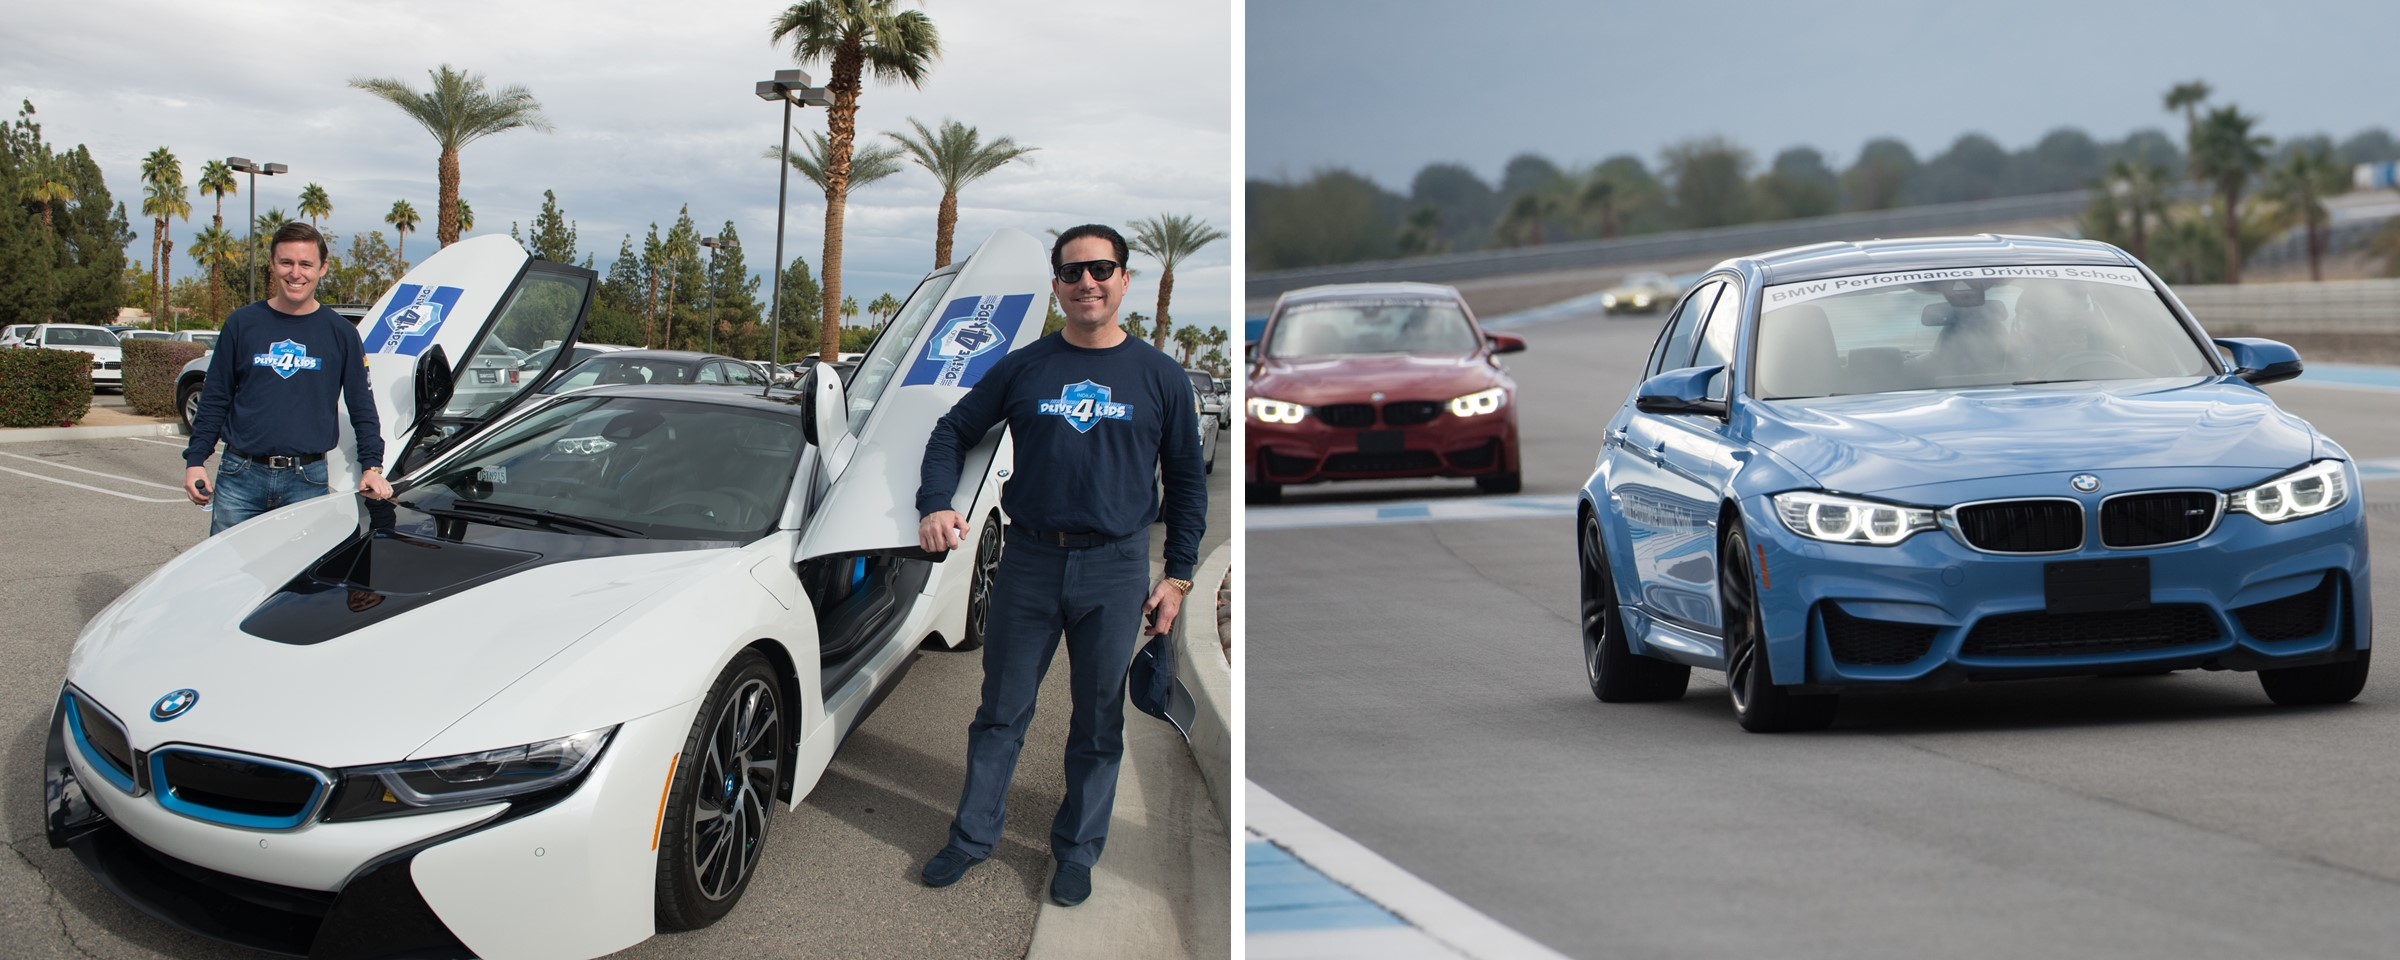 Bmw Palm Springs >> Drive4kids Raised 43 750 For The Bianca Rae Foundation S Rae Of